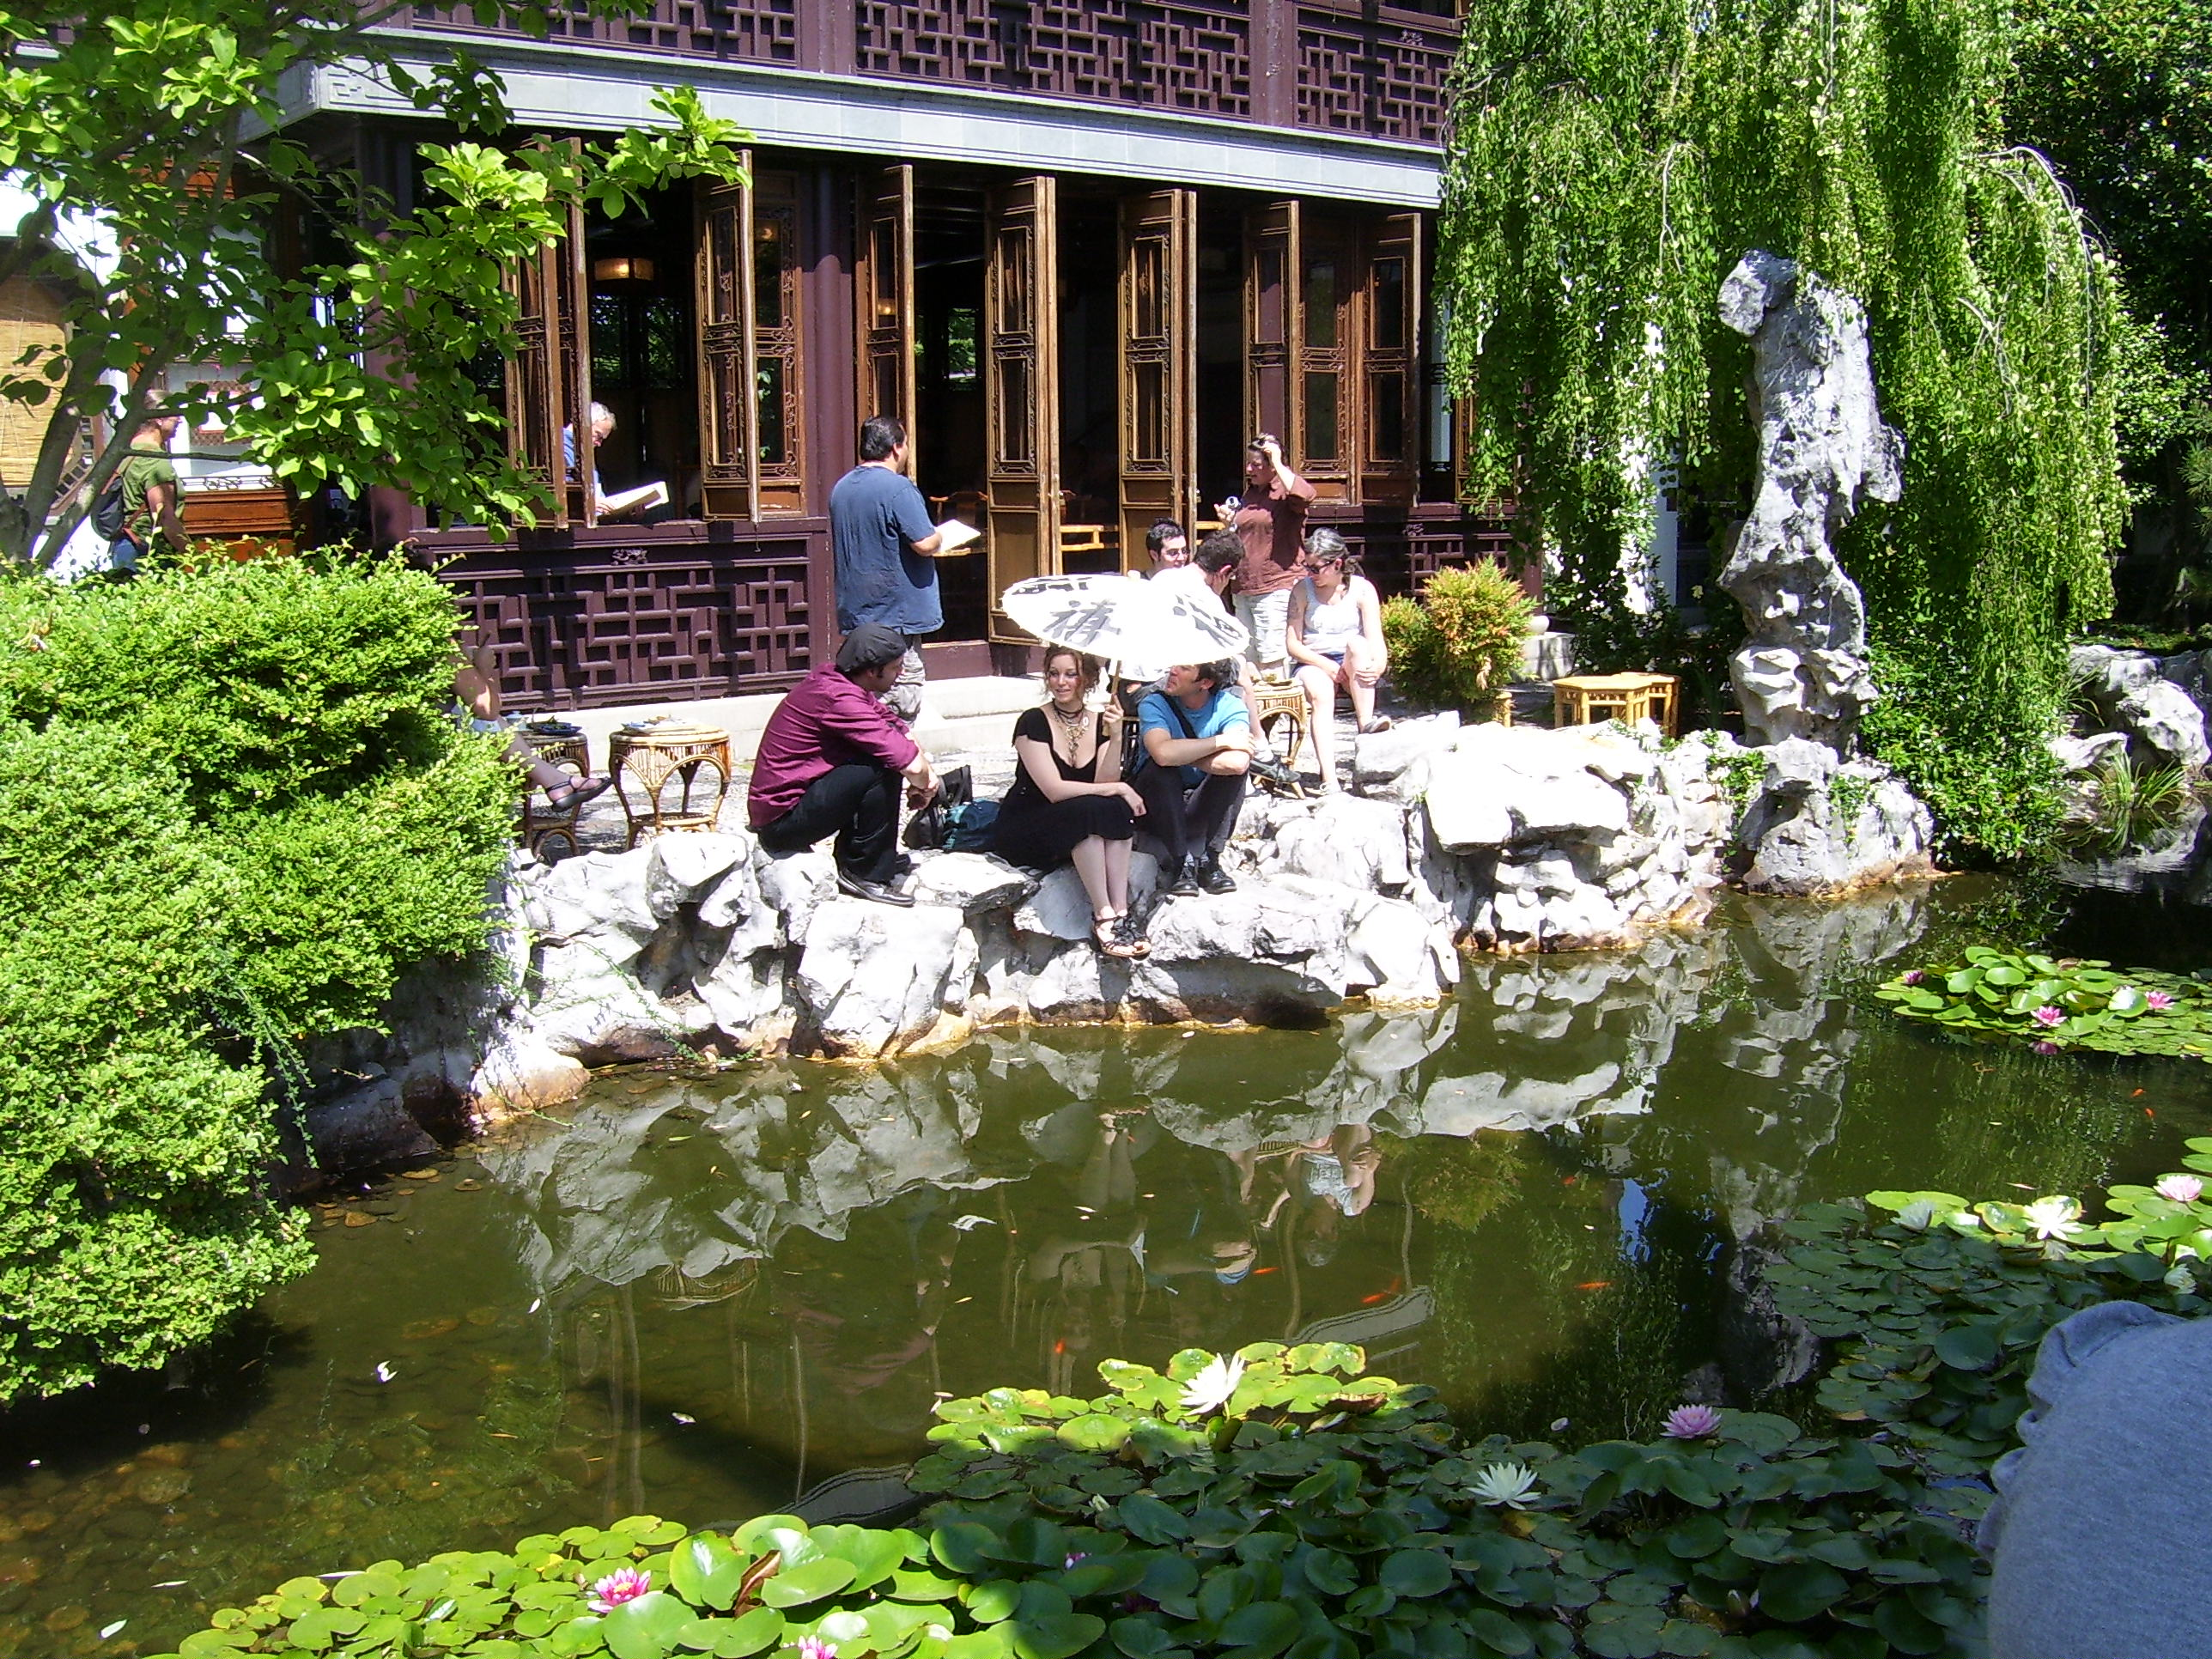 Teahouse at Lan Su Chinese Garden, photo by Jeff Hart via Flickr Creative Commons